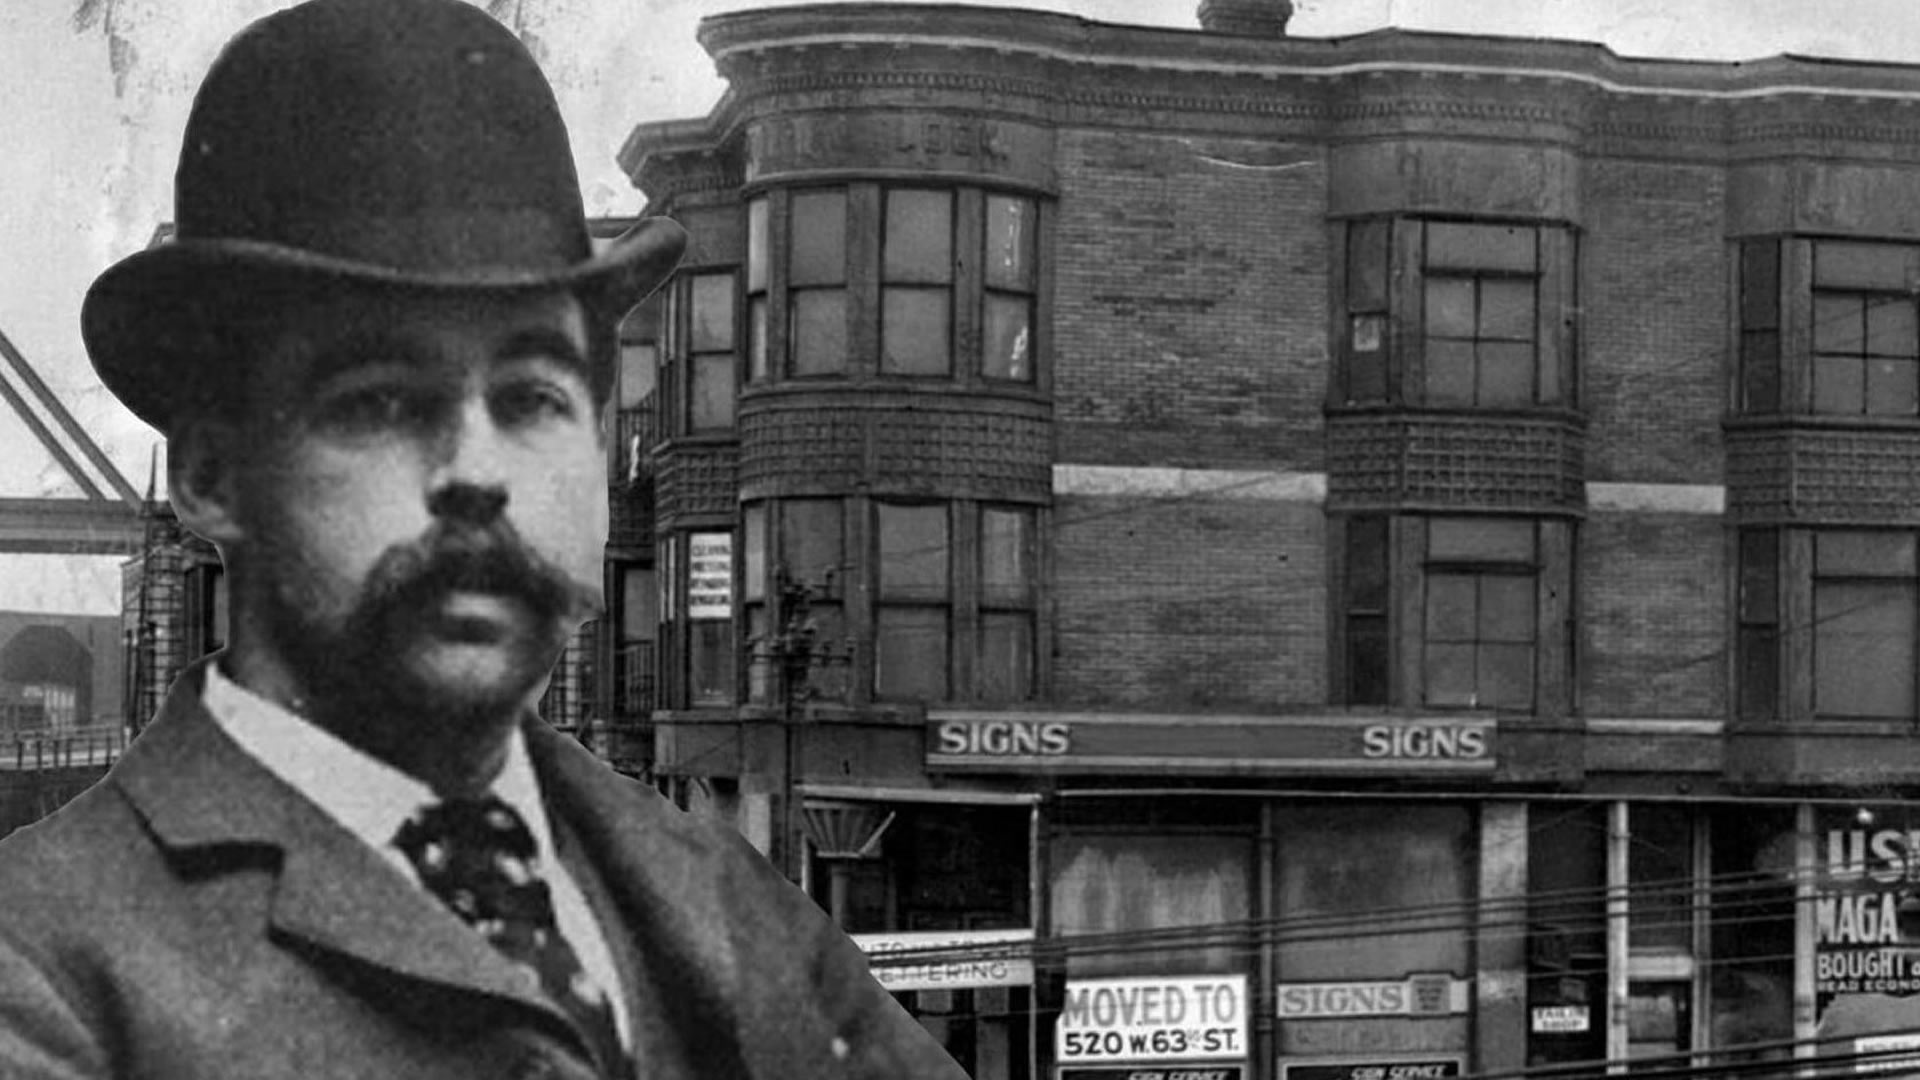 Serial killer H.H. Holmes conned Minnie Williams out of her Fort Worth real estate holdings before killing her.